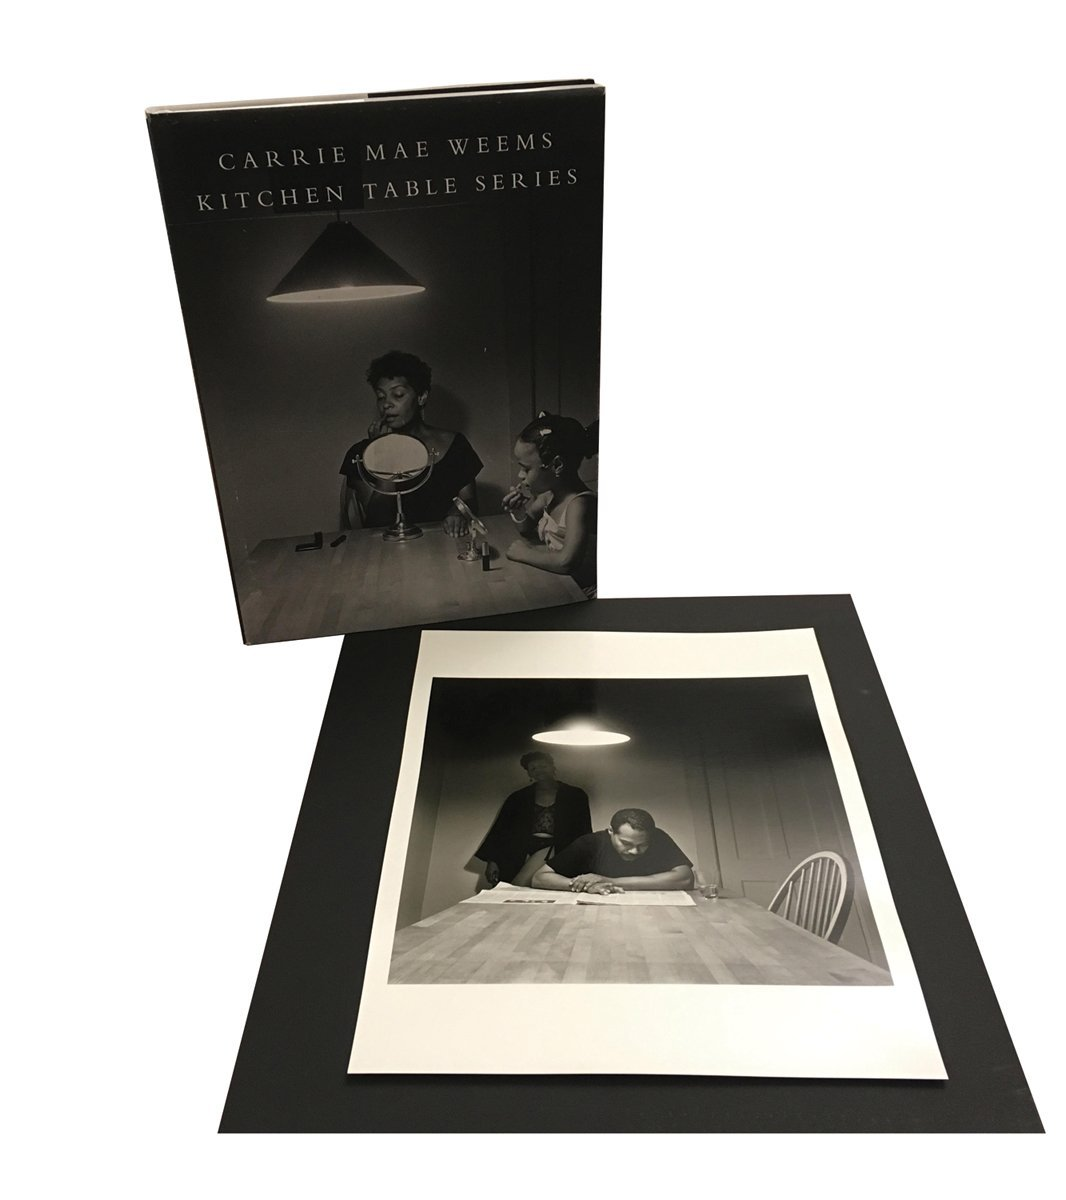 Carrie Mae Weems Kitchen Table Series Limited Edition Amazon De